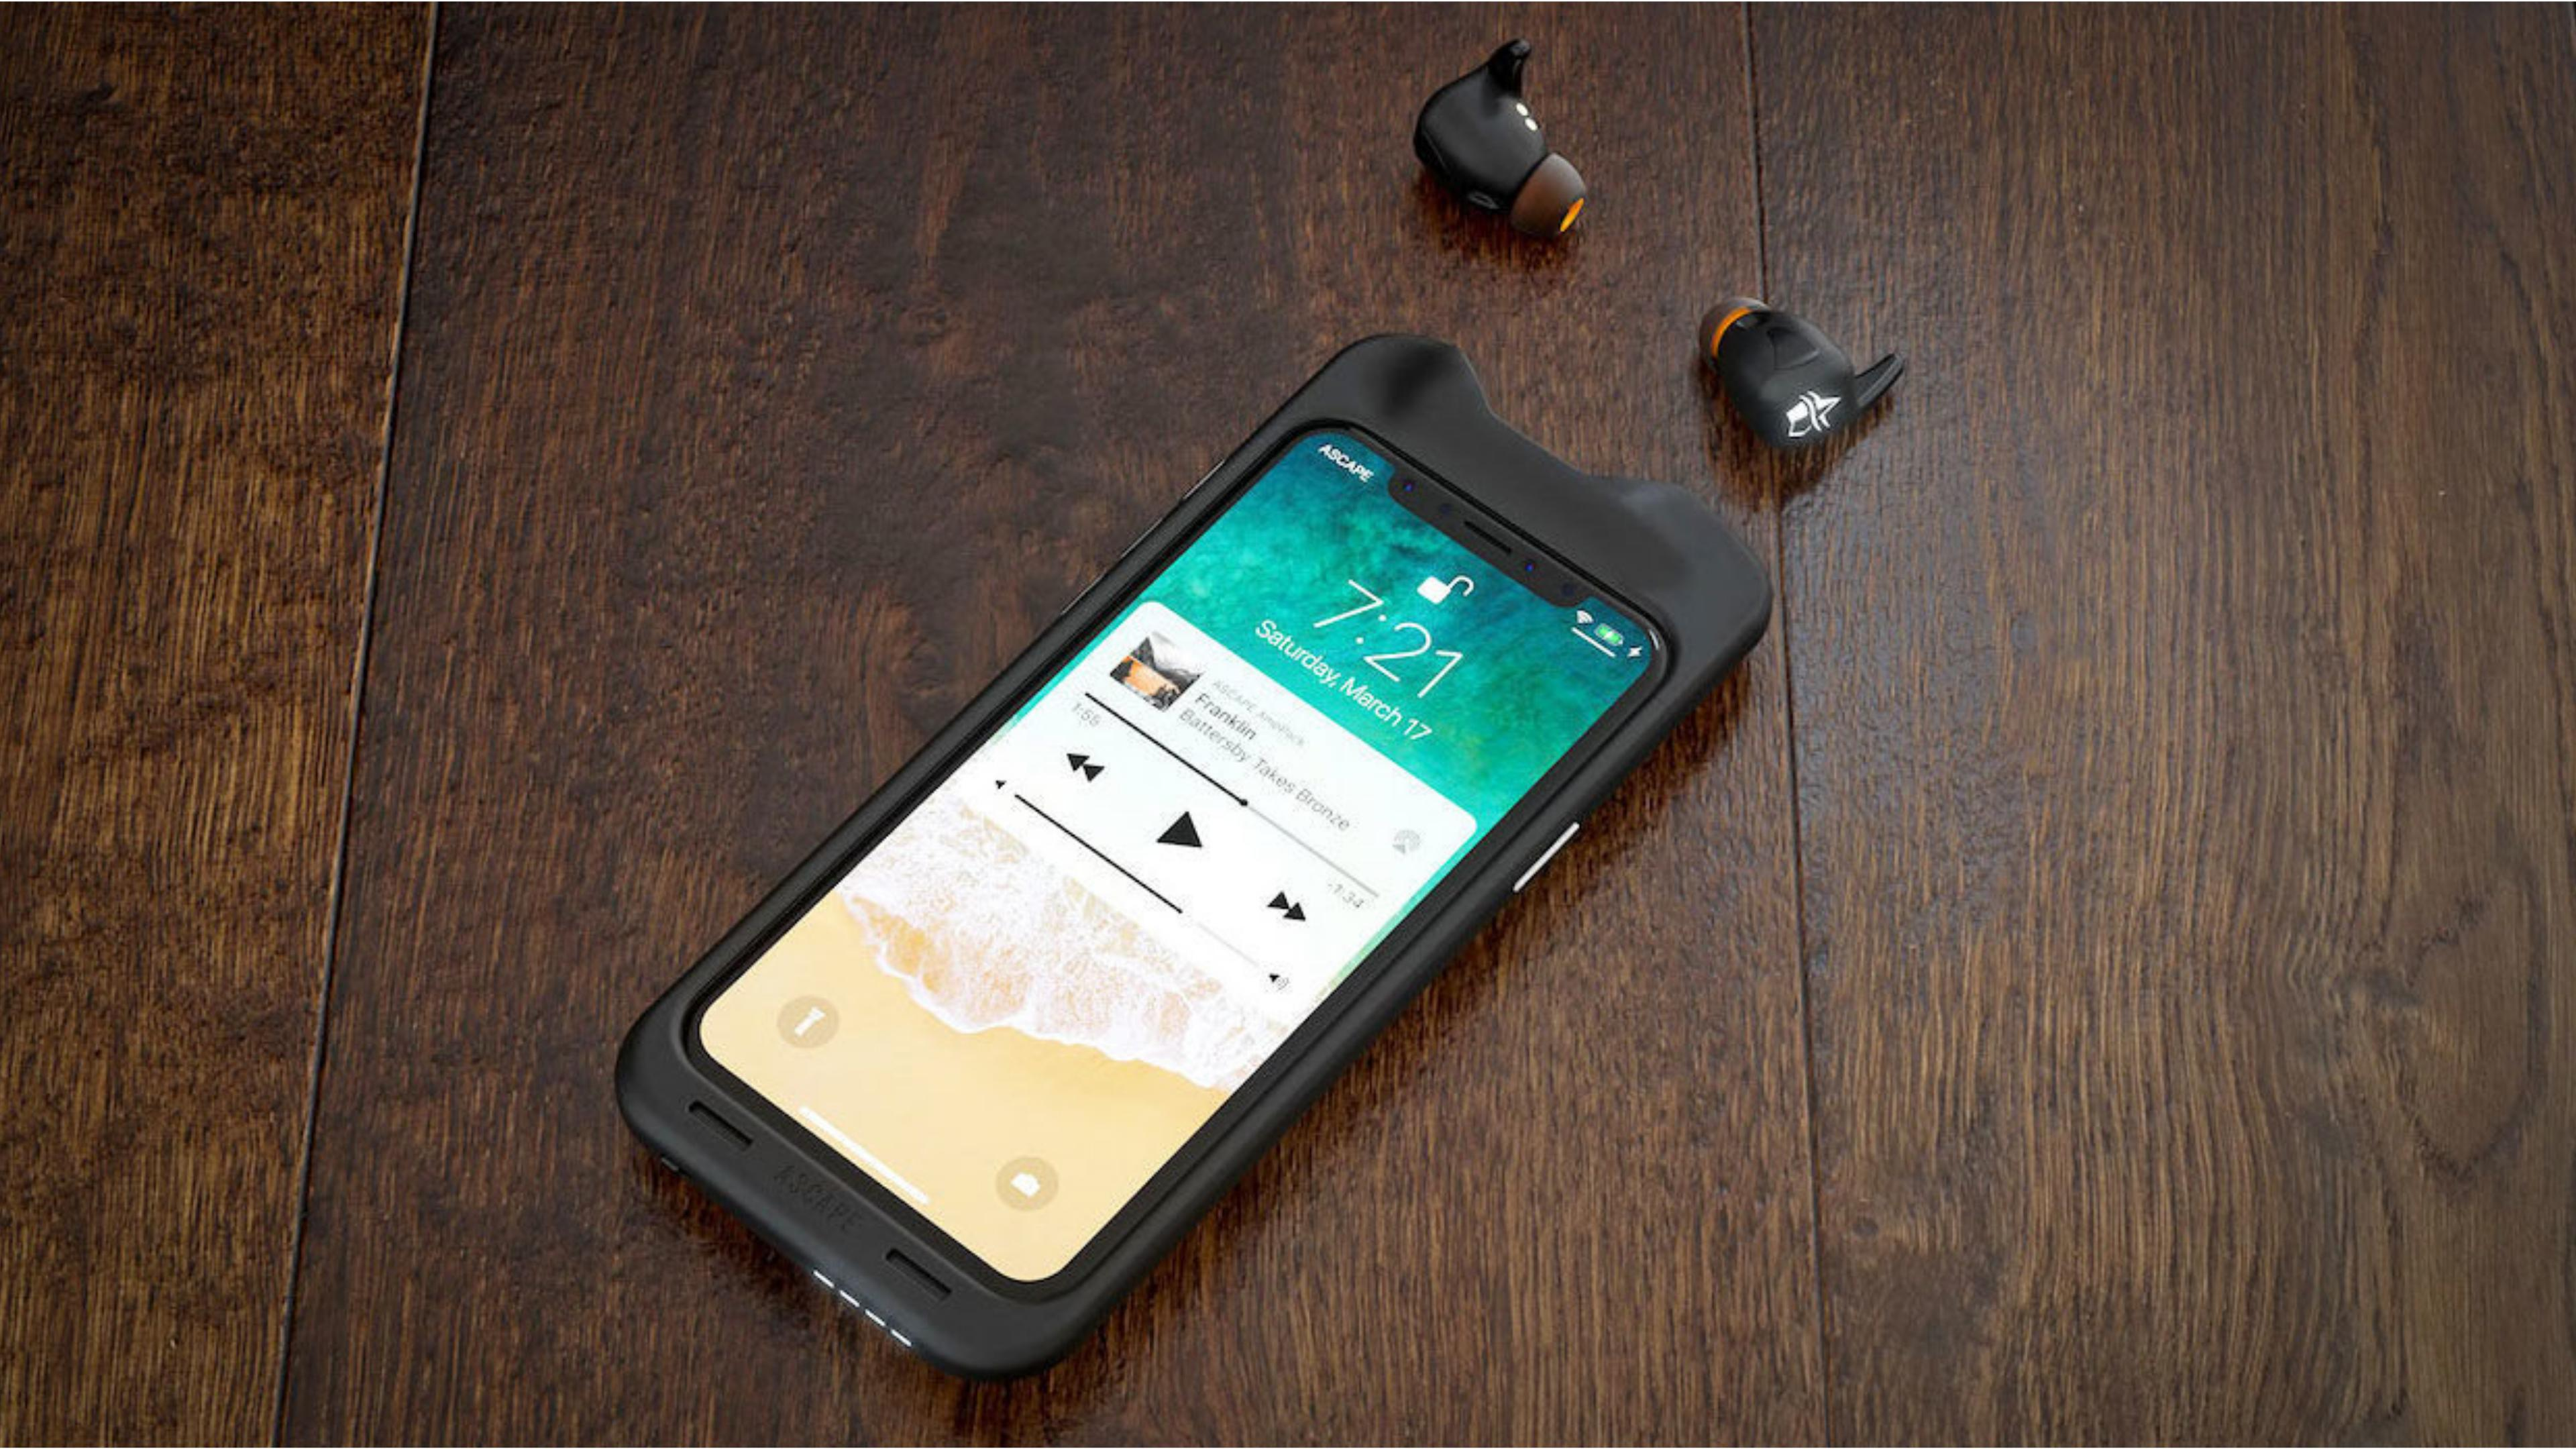 Castile wireless SoundFlow